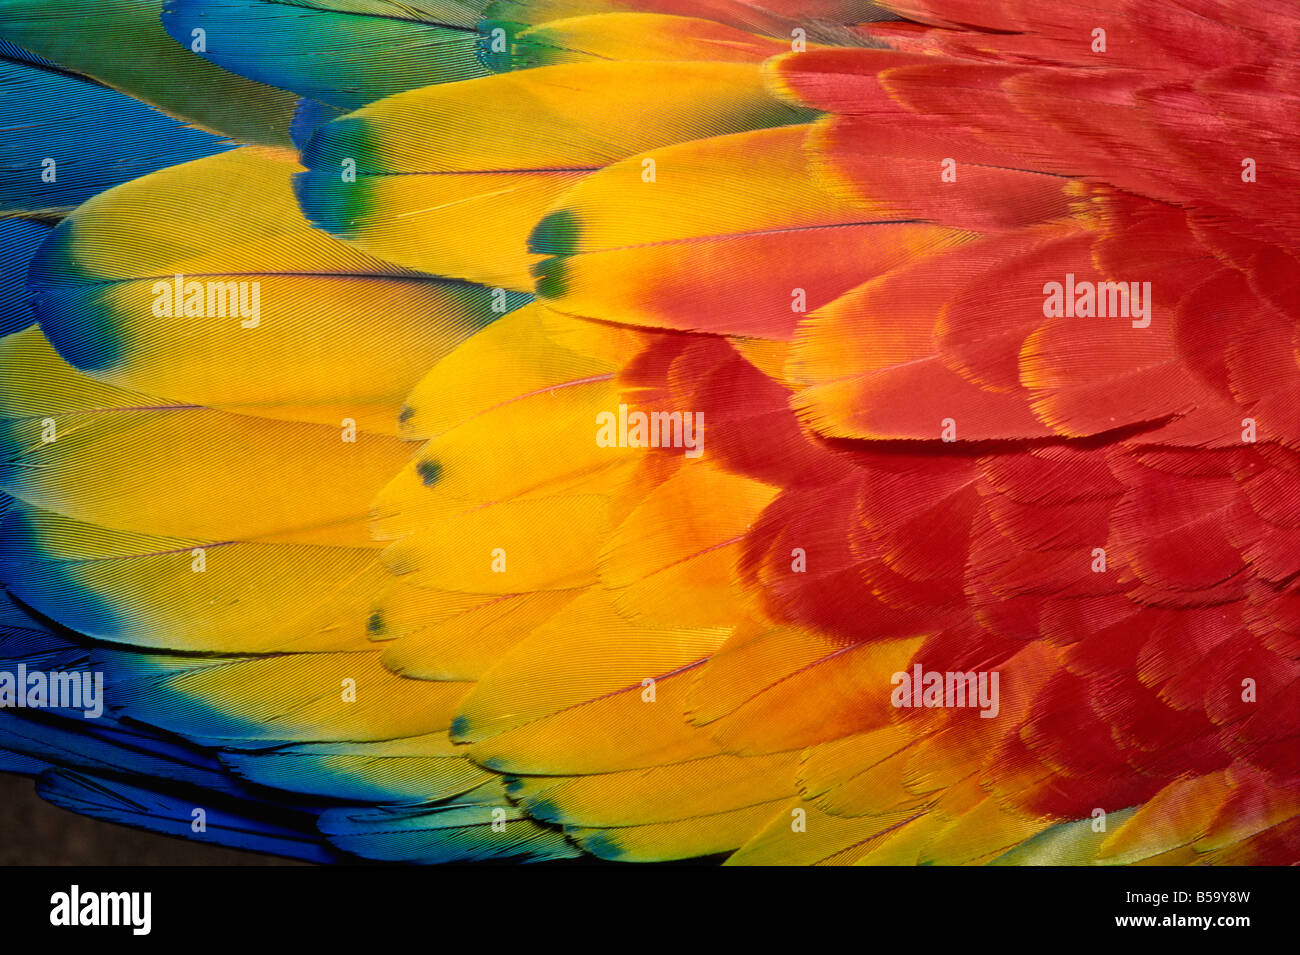 Feathers of scarlet macaw, Guatemala, Central America - Stock Image